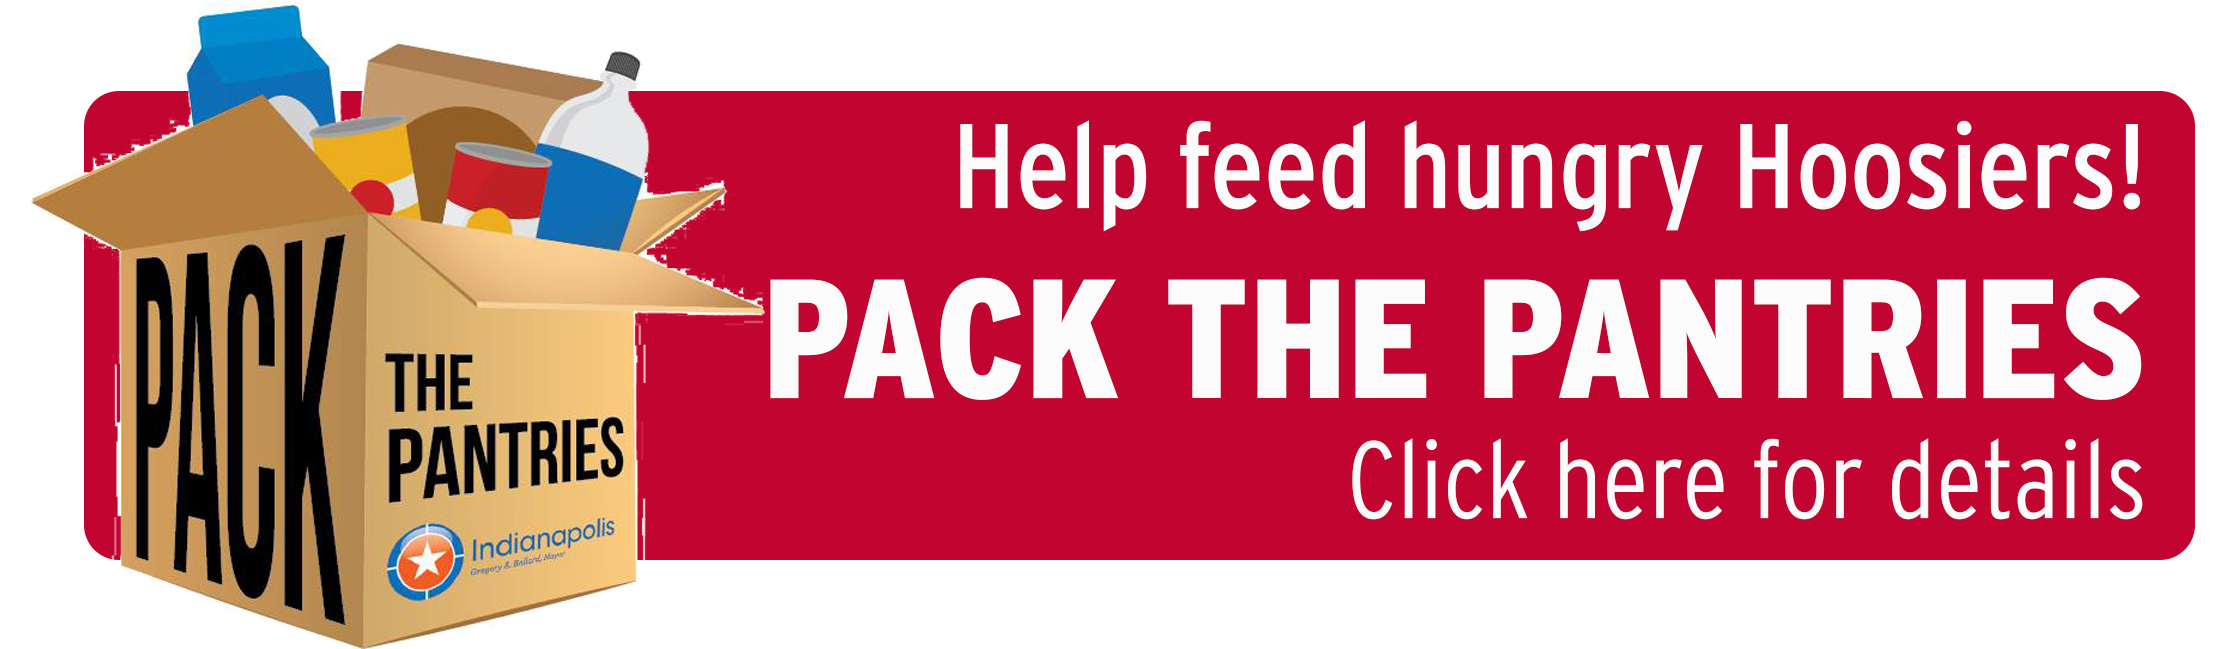 Pack the pantries web banner